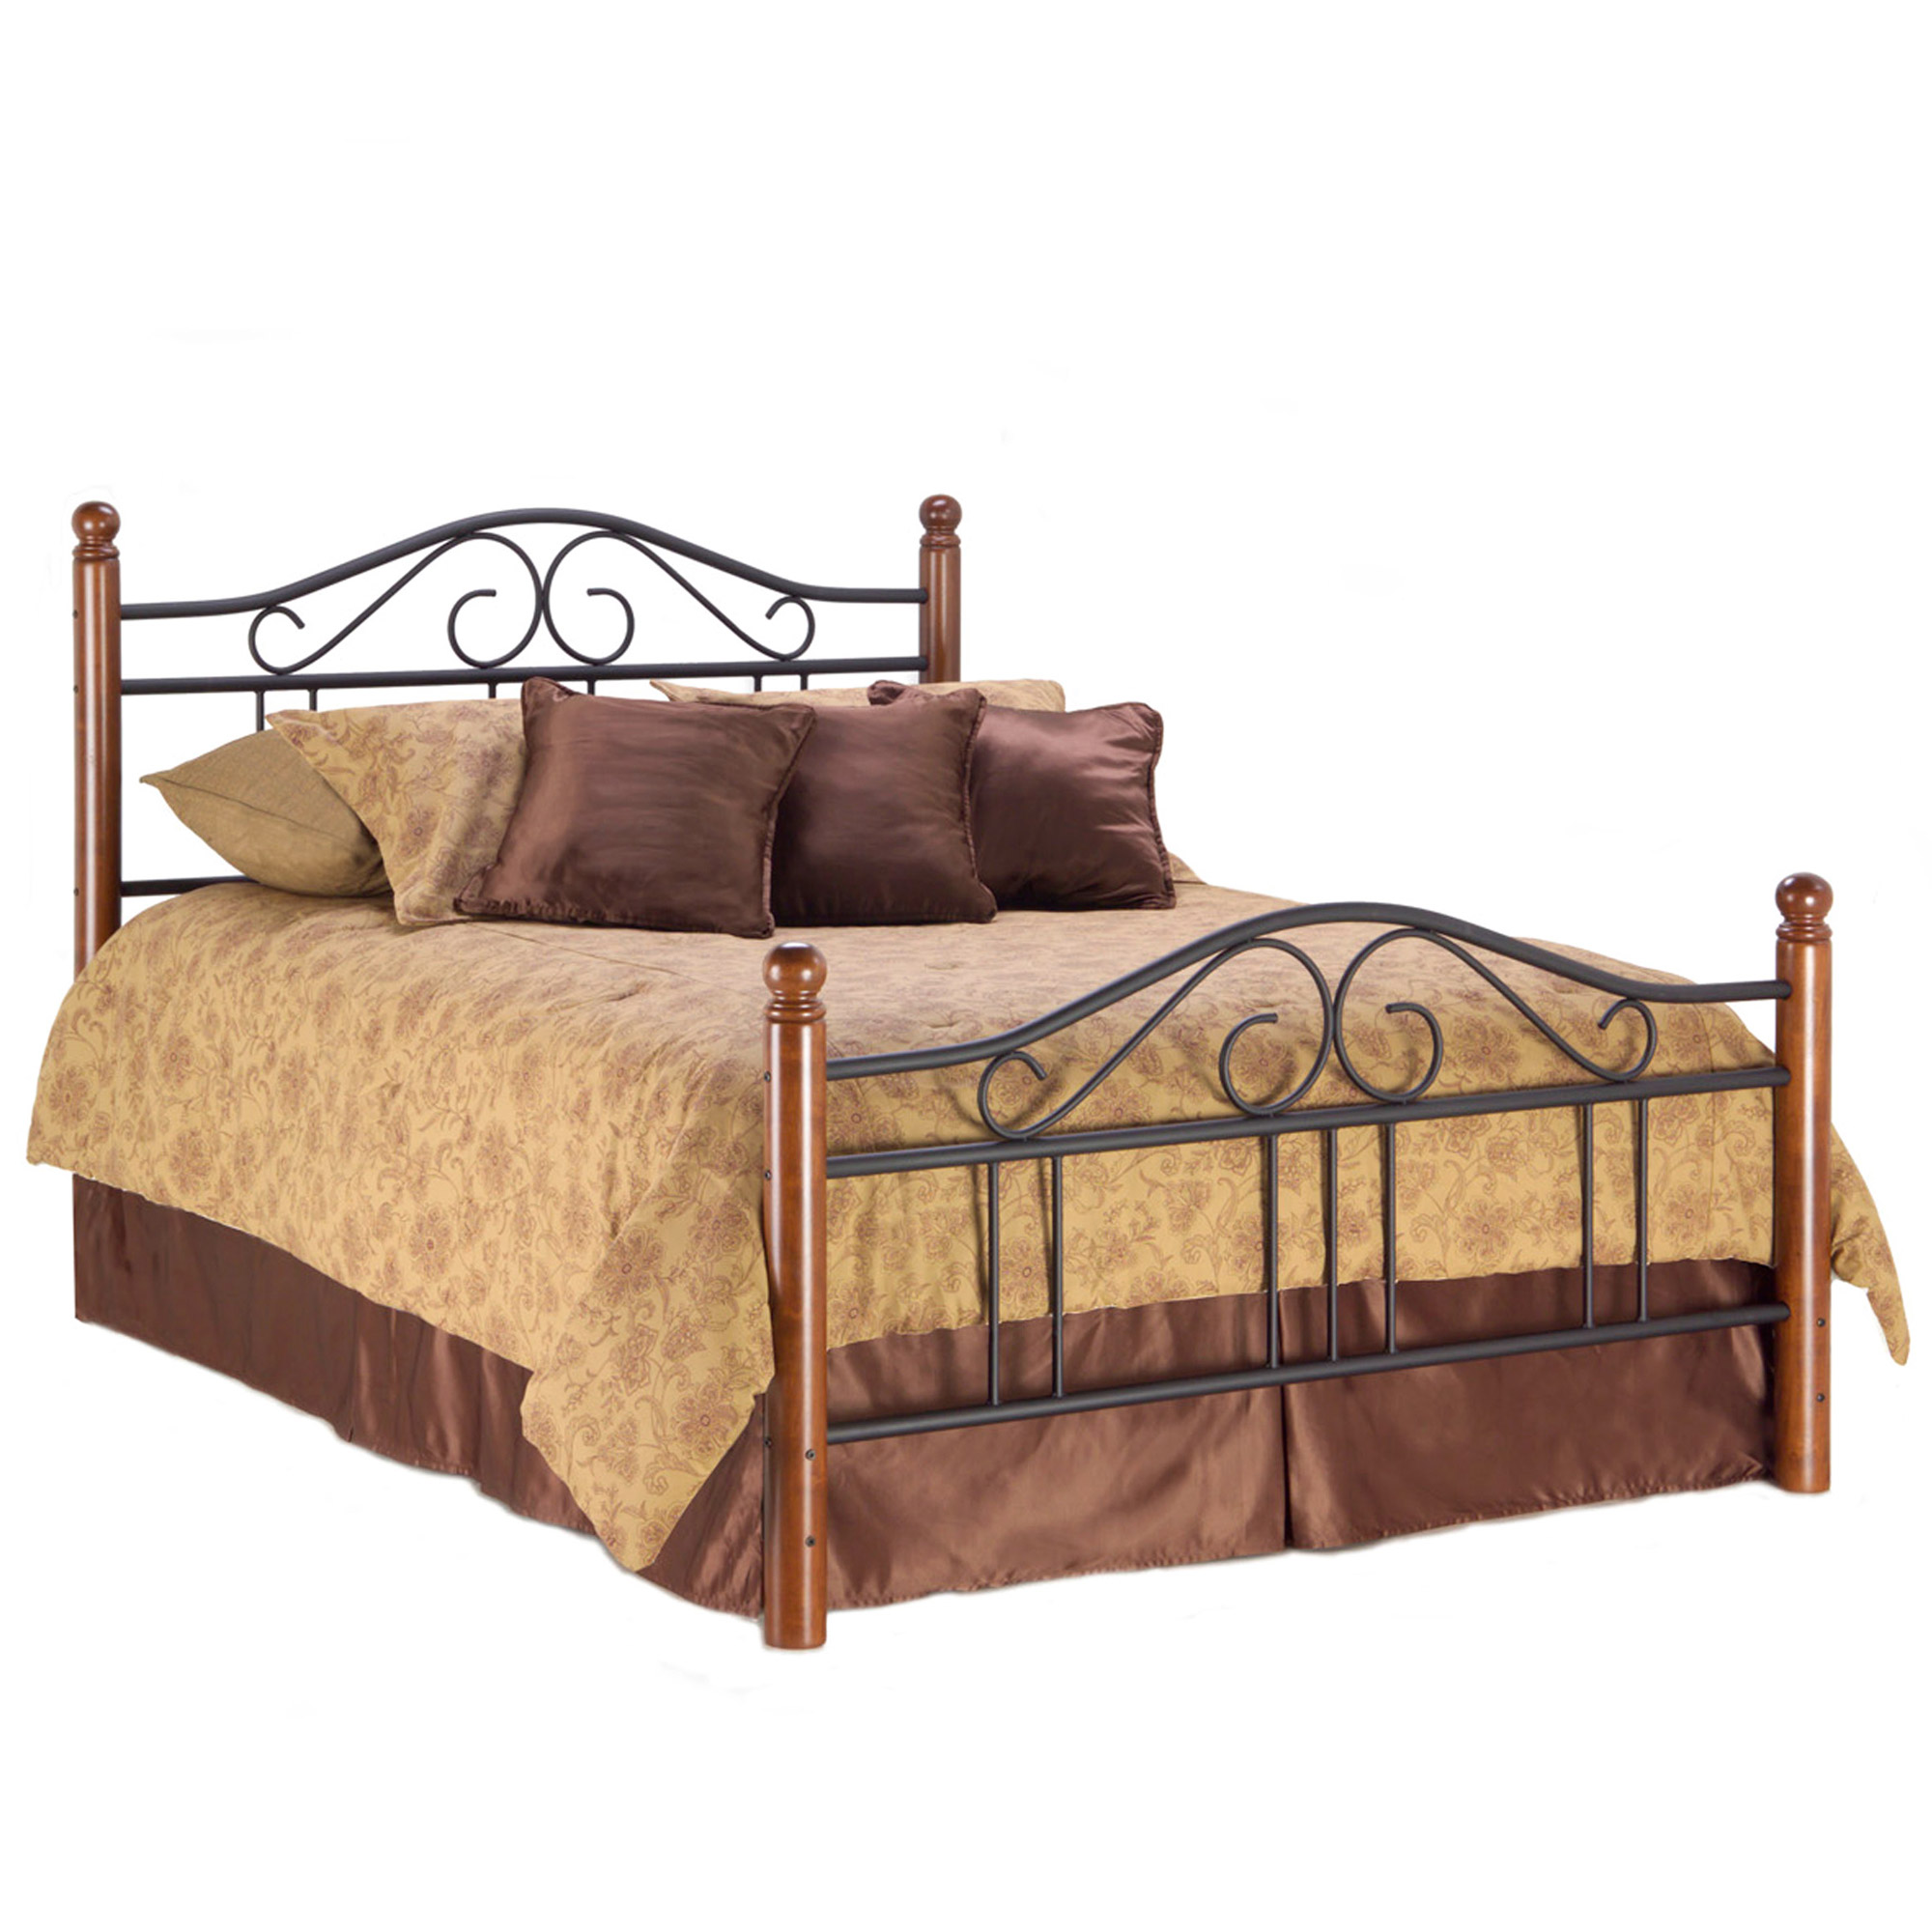 scalloped metal furniture wrought iron bedroom bed complete panels finial posts b autumn size beds home brown and fashion depot frame group dynasty with compressed headboards the king arched n